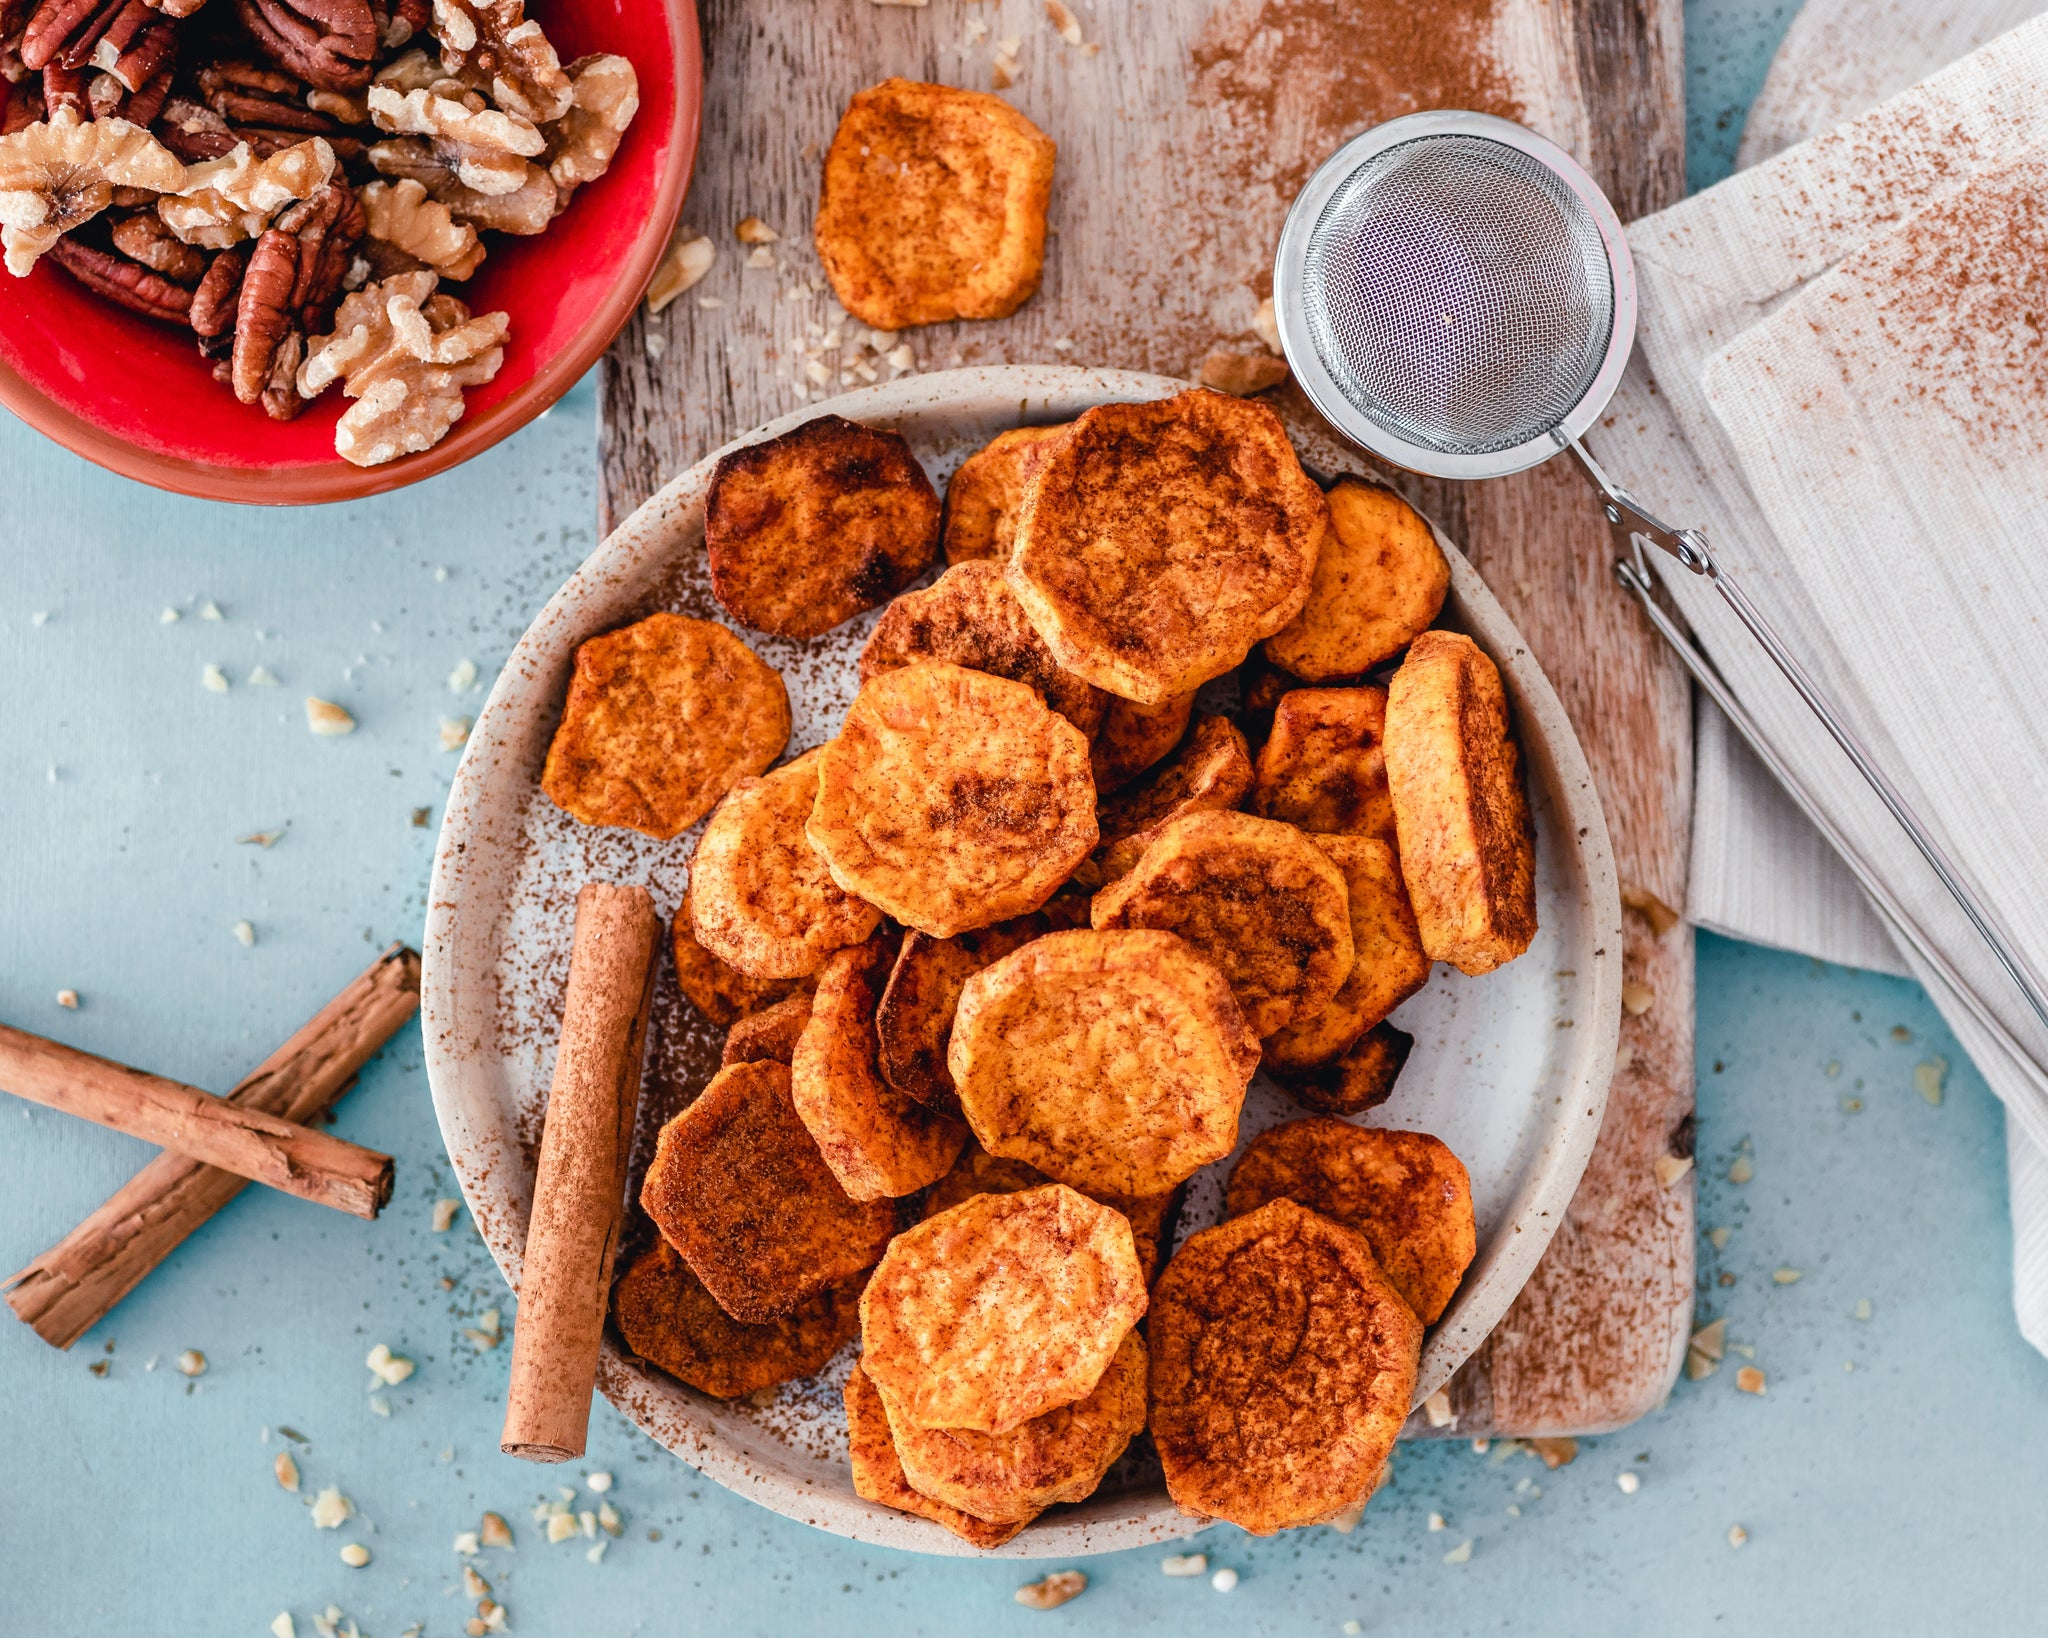 Sweet potato slices in a bowl